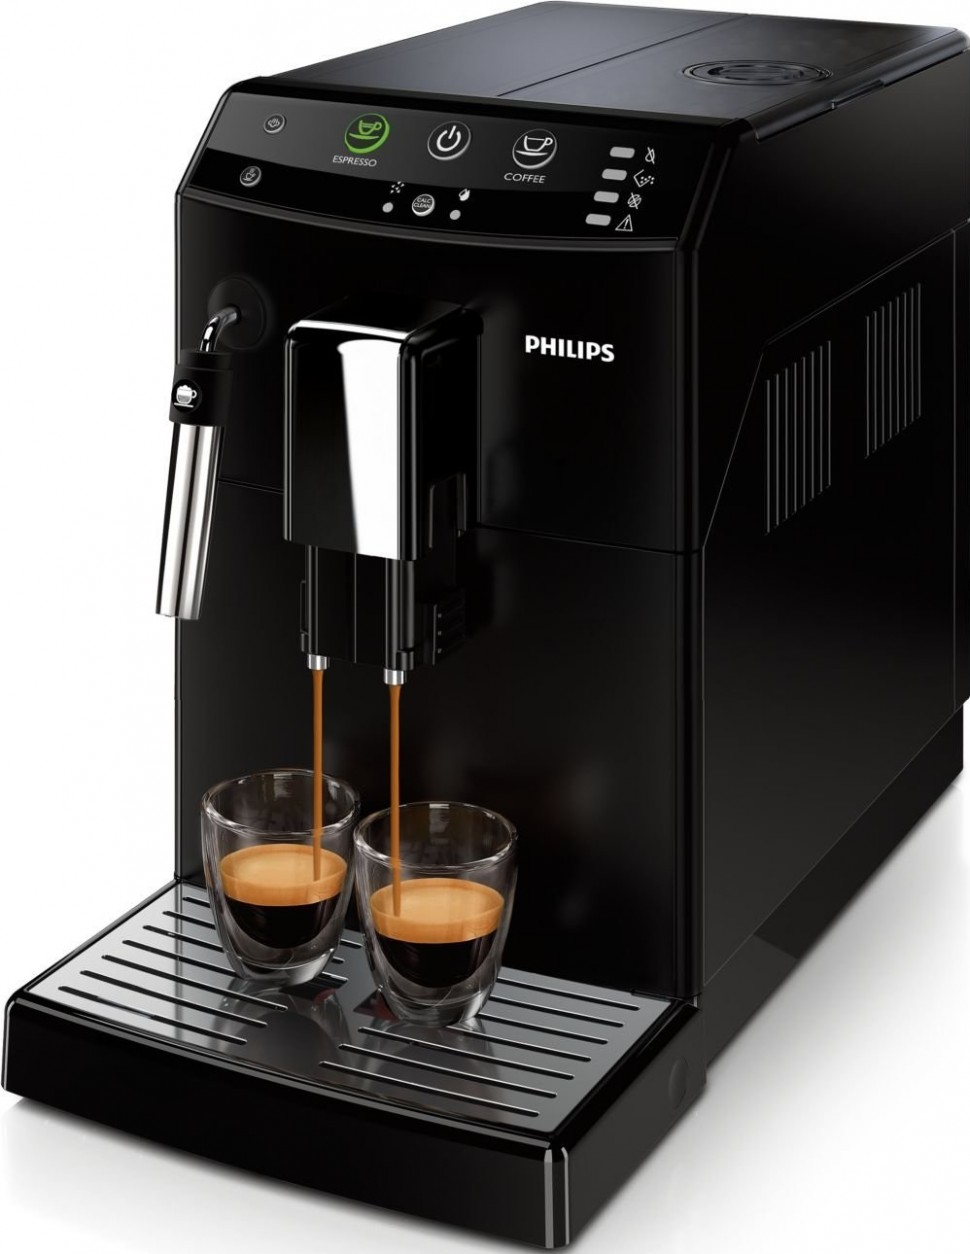 get your perfect espresso extracting the best out of each fresh bean thanks to the 100 ceramic grinders that donu0027t overheat coffee beans